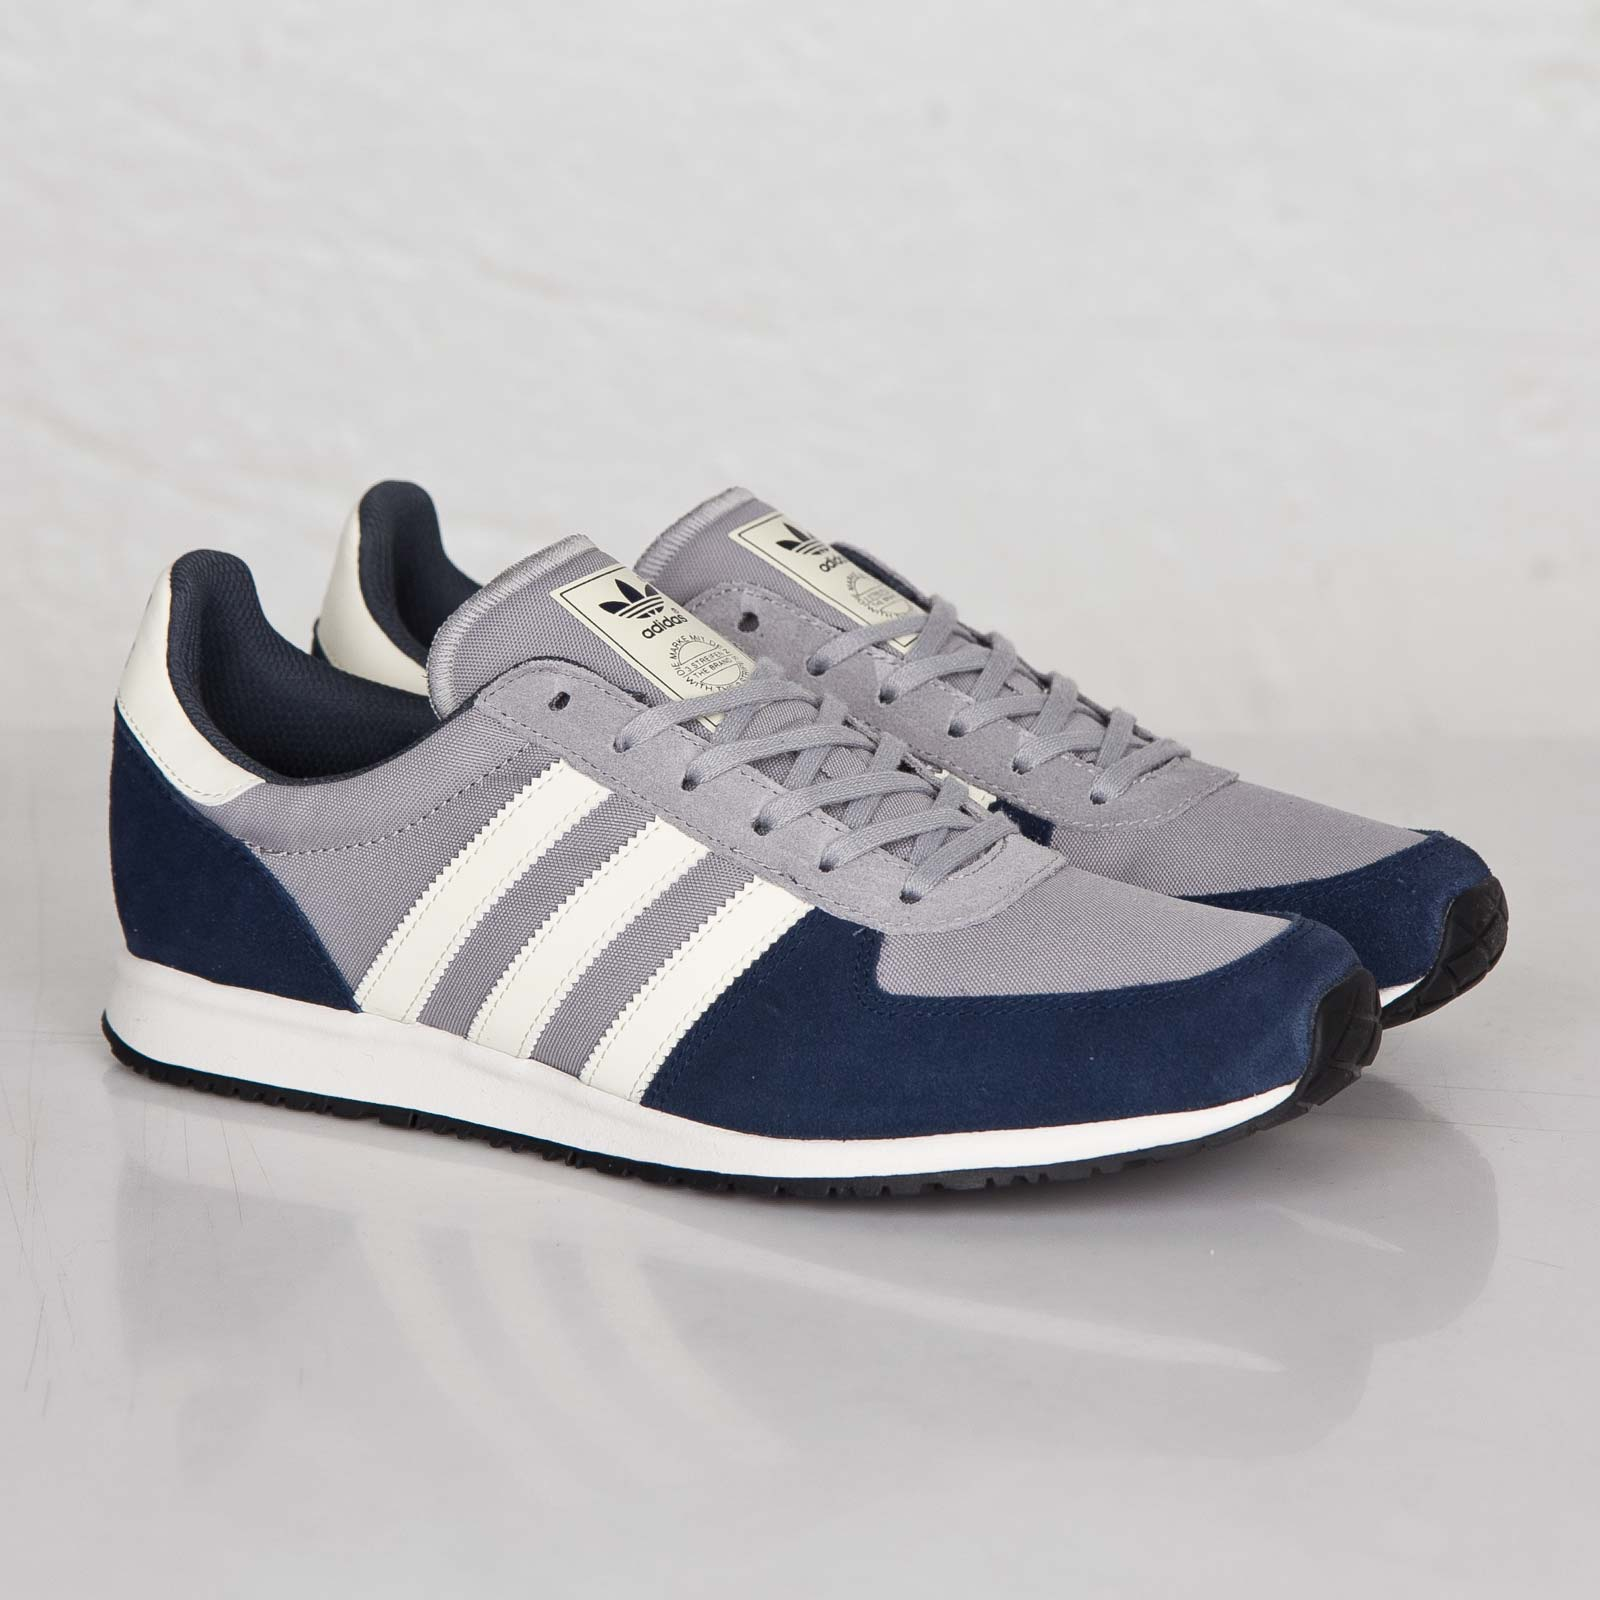 adidas Adistar Racer shoes blue grey white